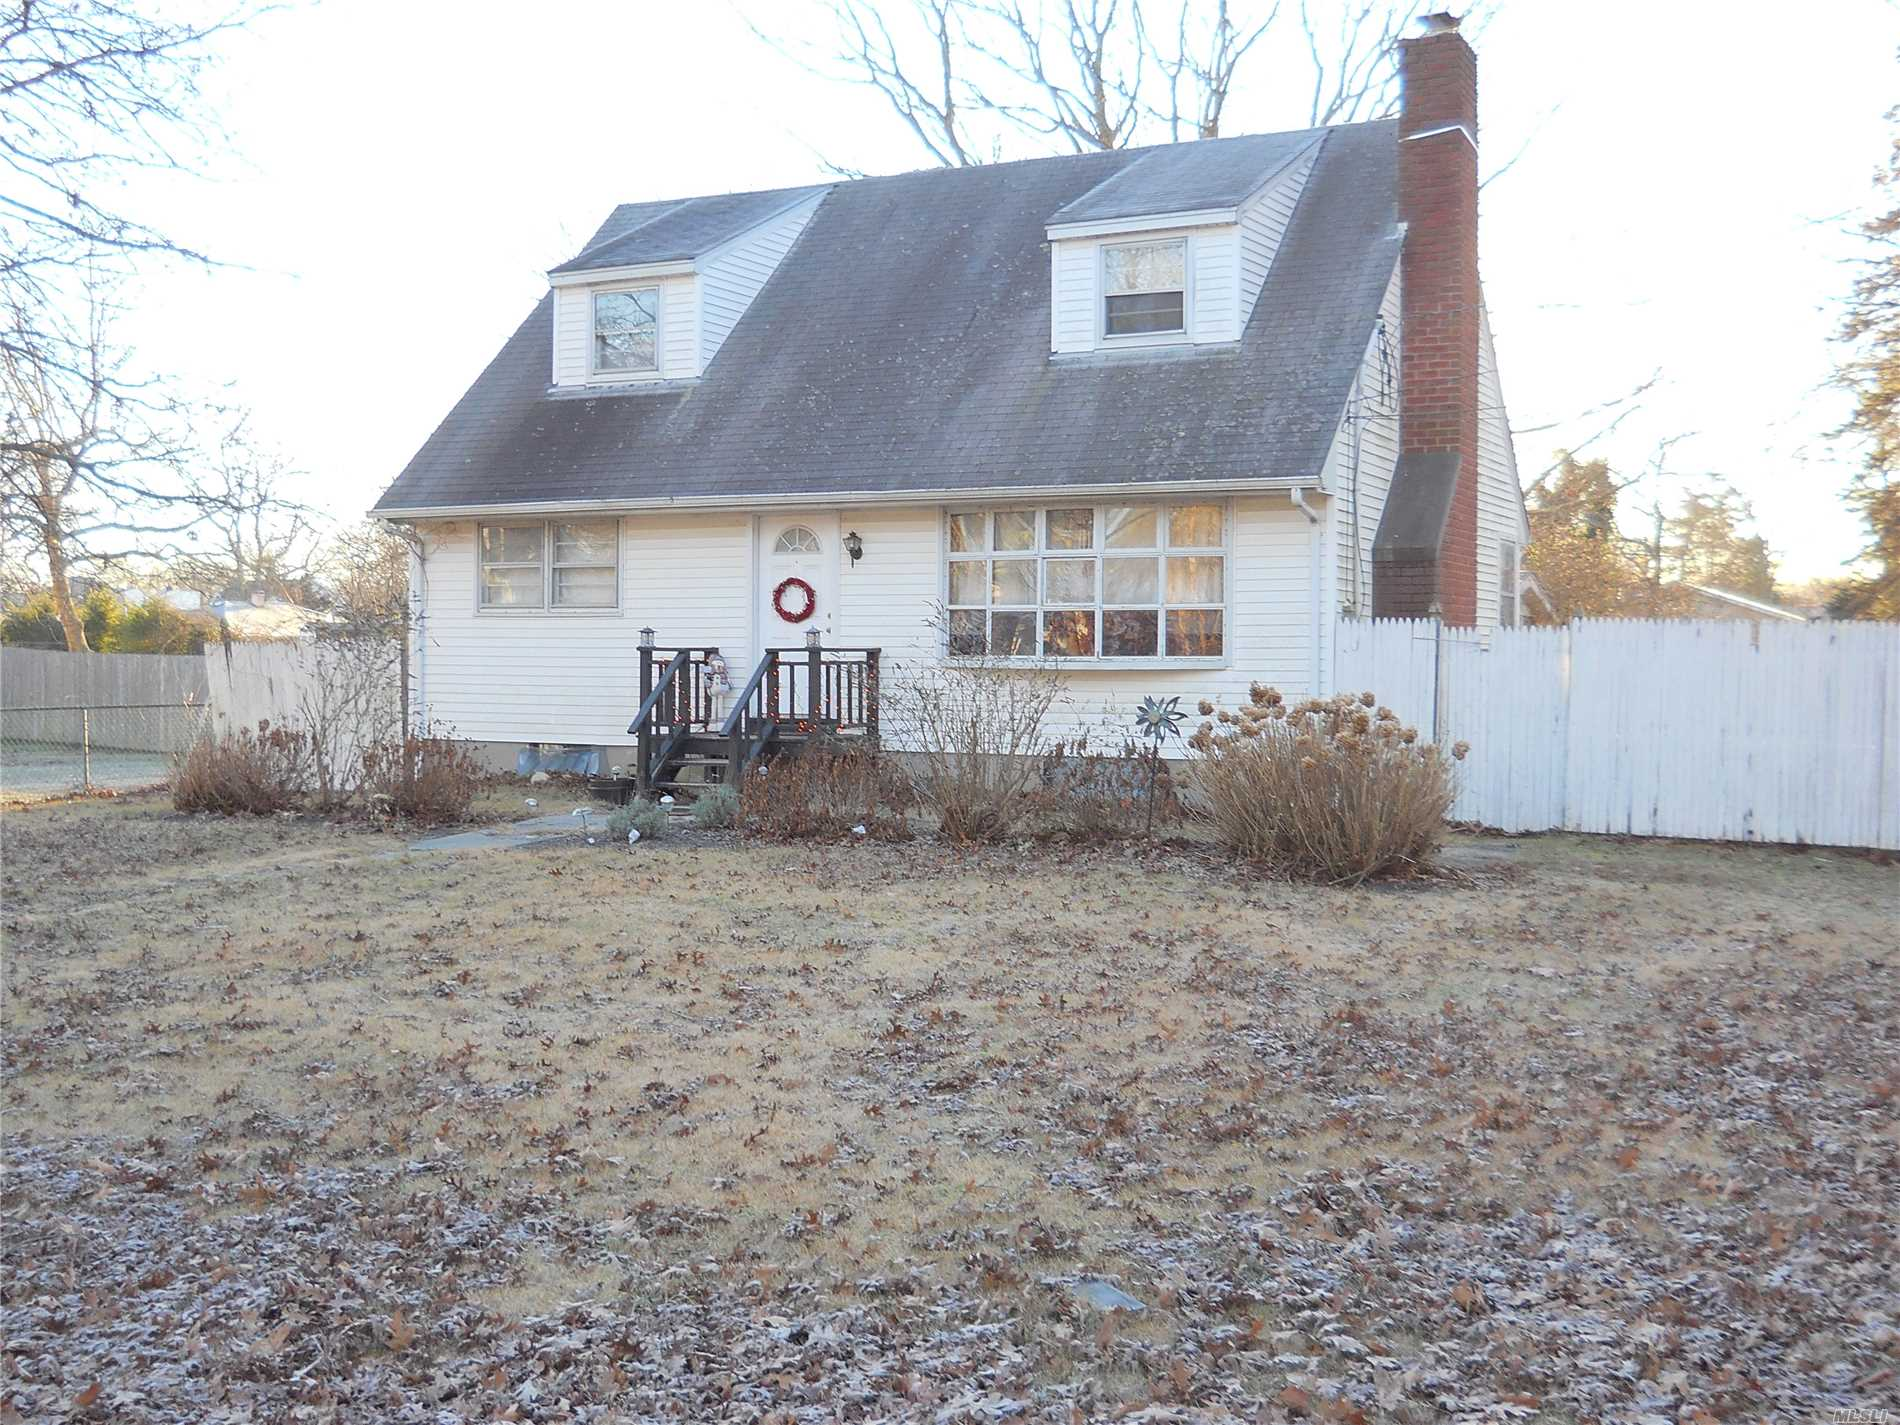 Sale Includes Both Lots 24 And 25; Very Large Yard; Plenty Of Potential!